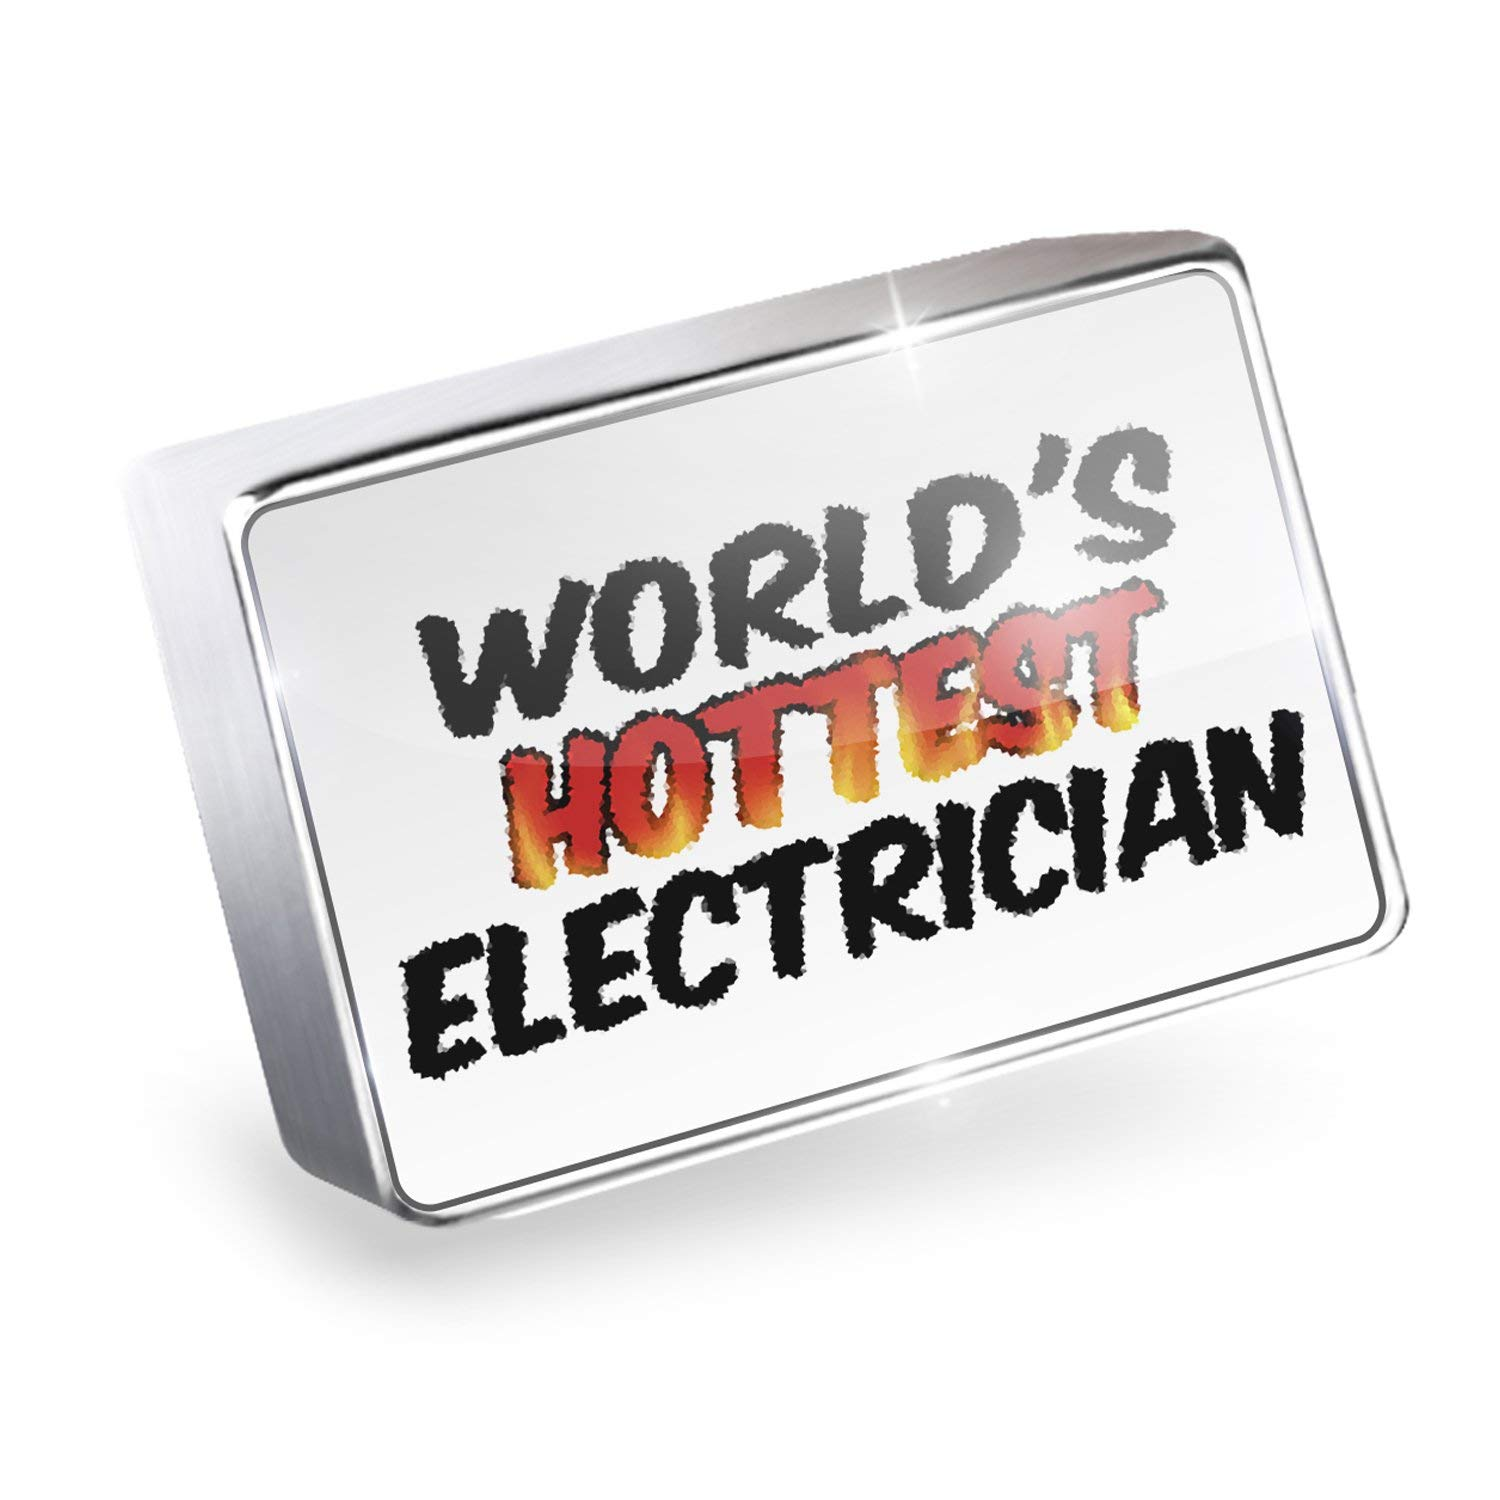 Floating Charm Worlds hottest Electrician Fits Glass Lockets, Neonblond